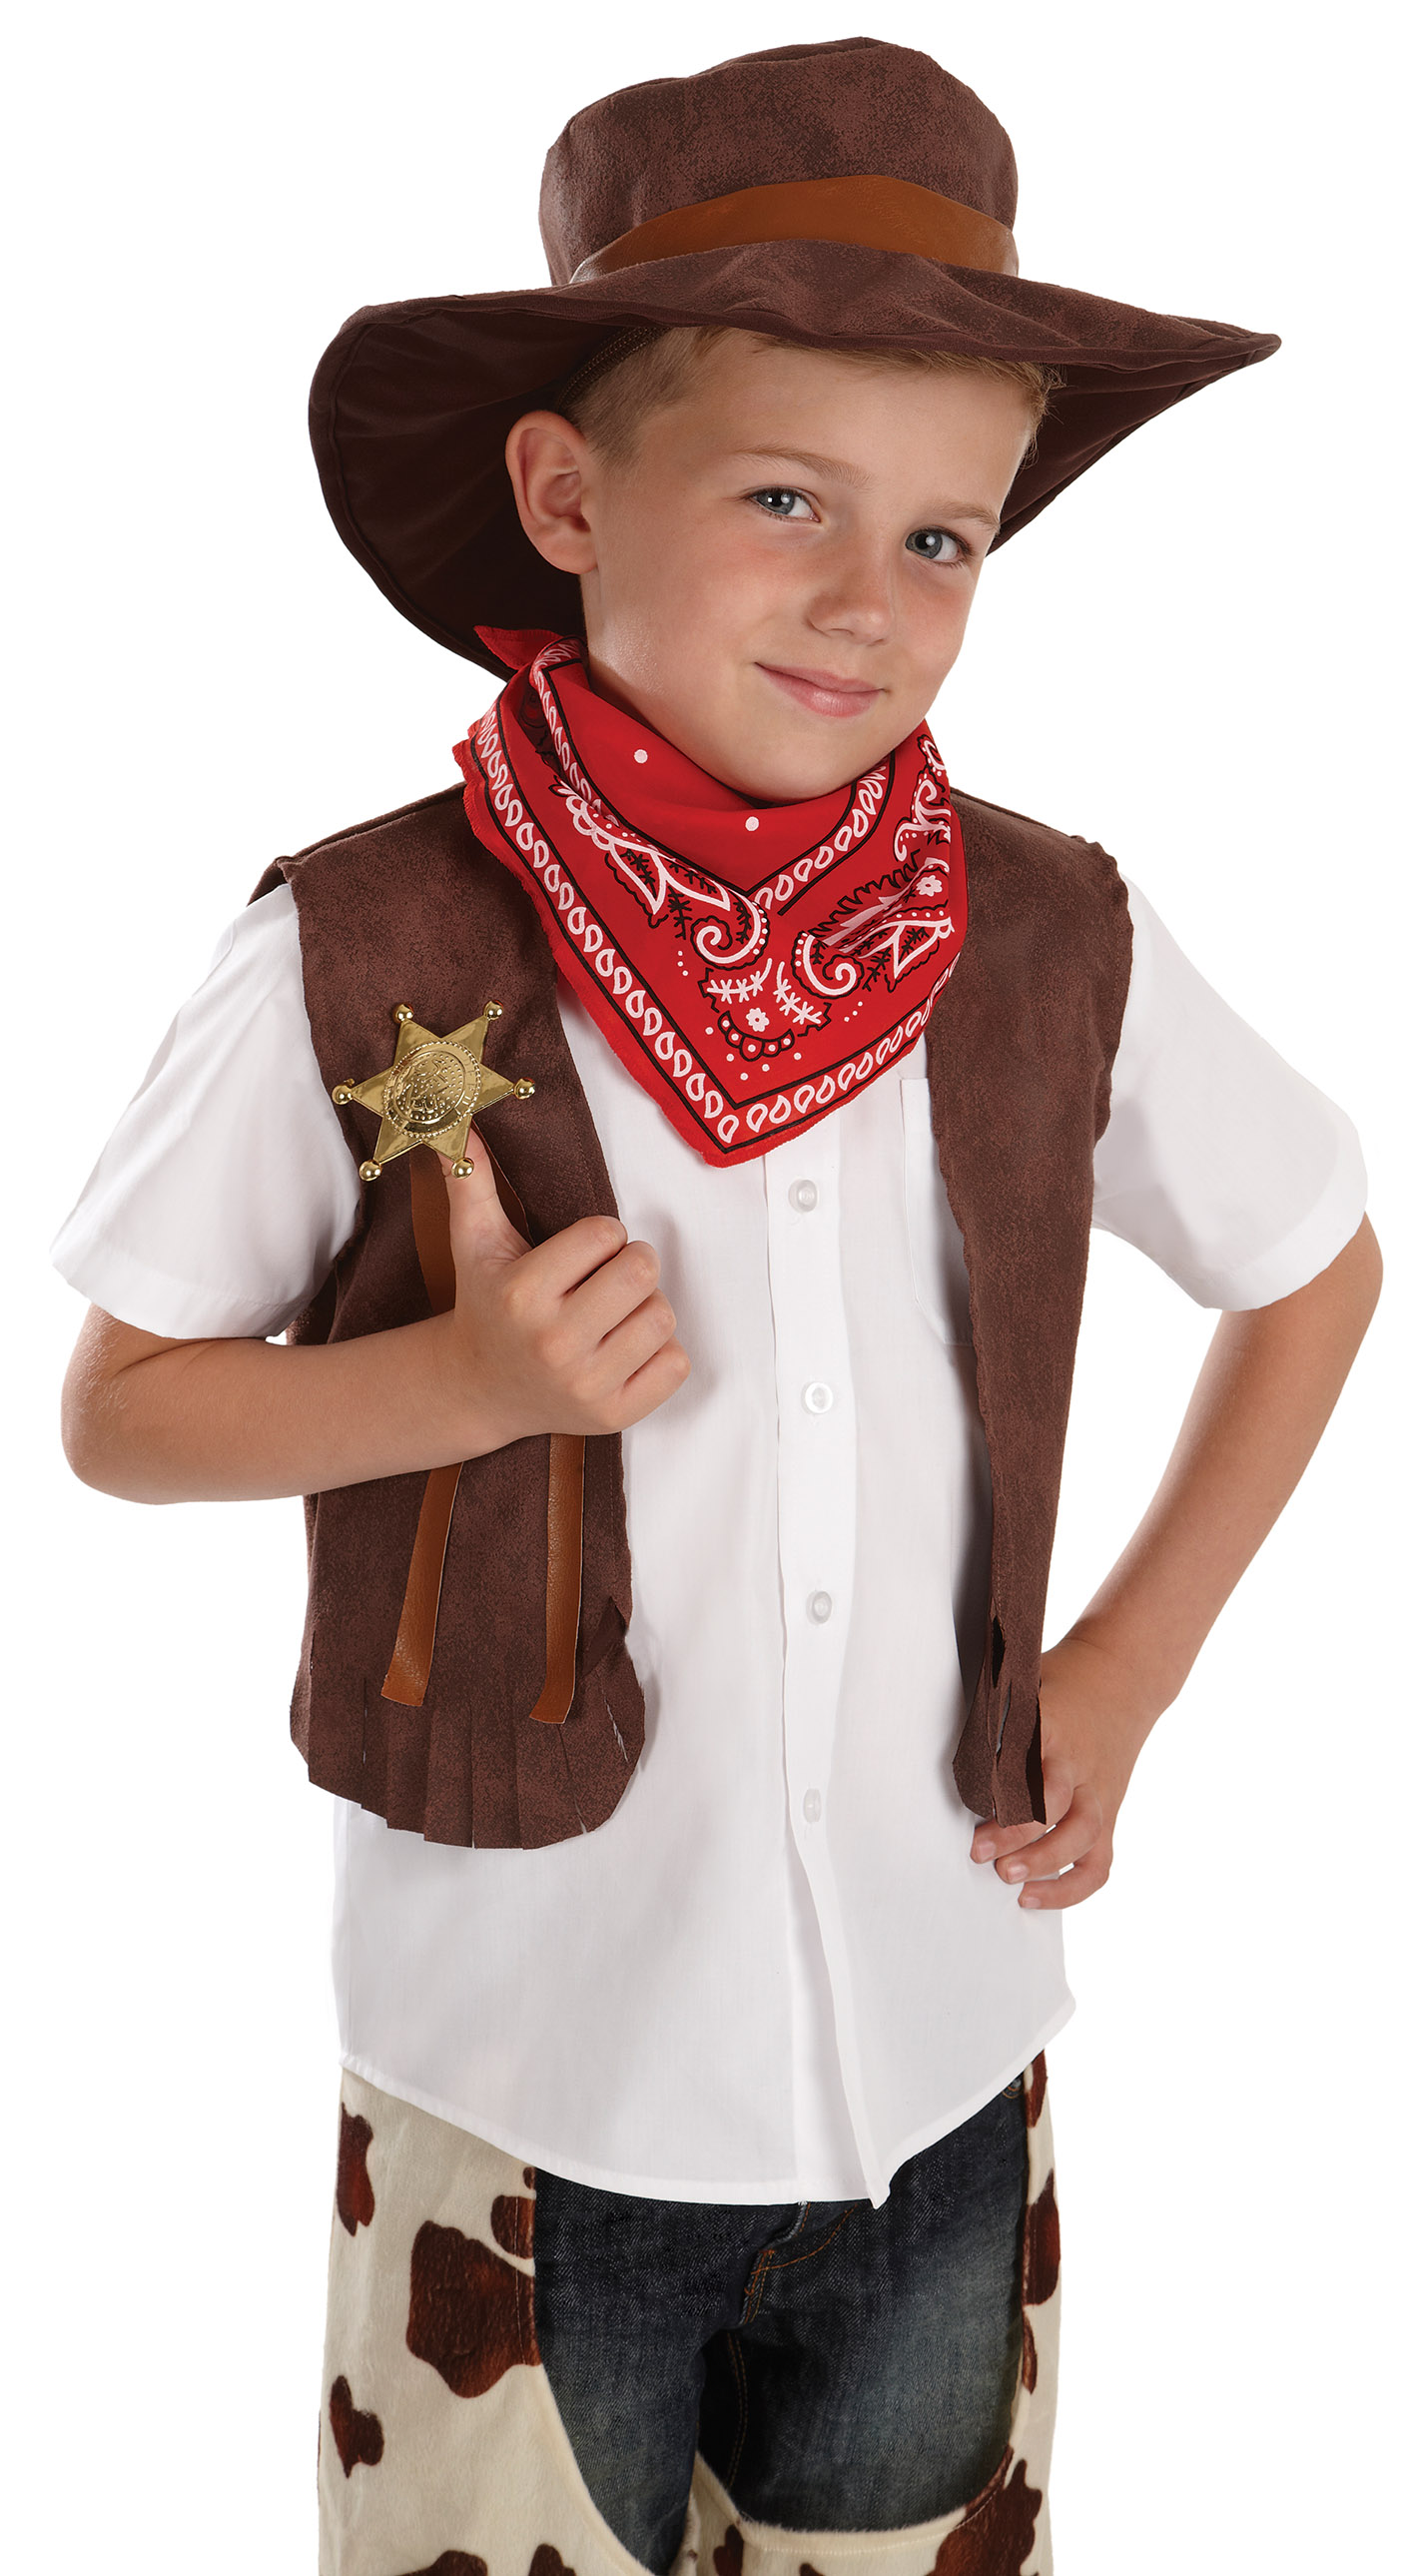 Boys Cowboy Costume For Wild West Fancy Dress Kids Childrens